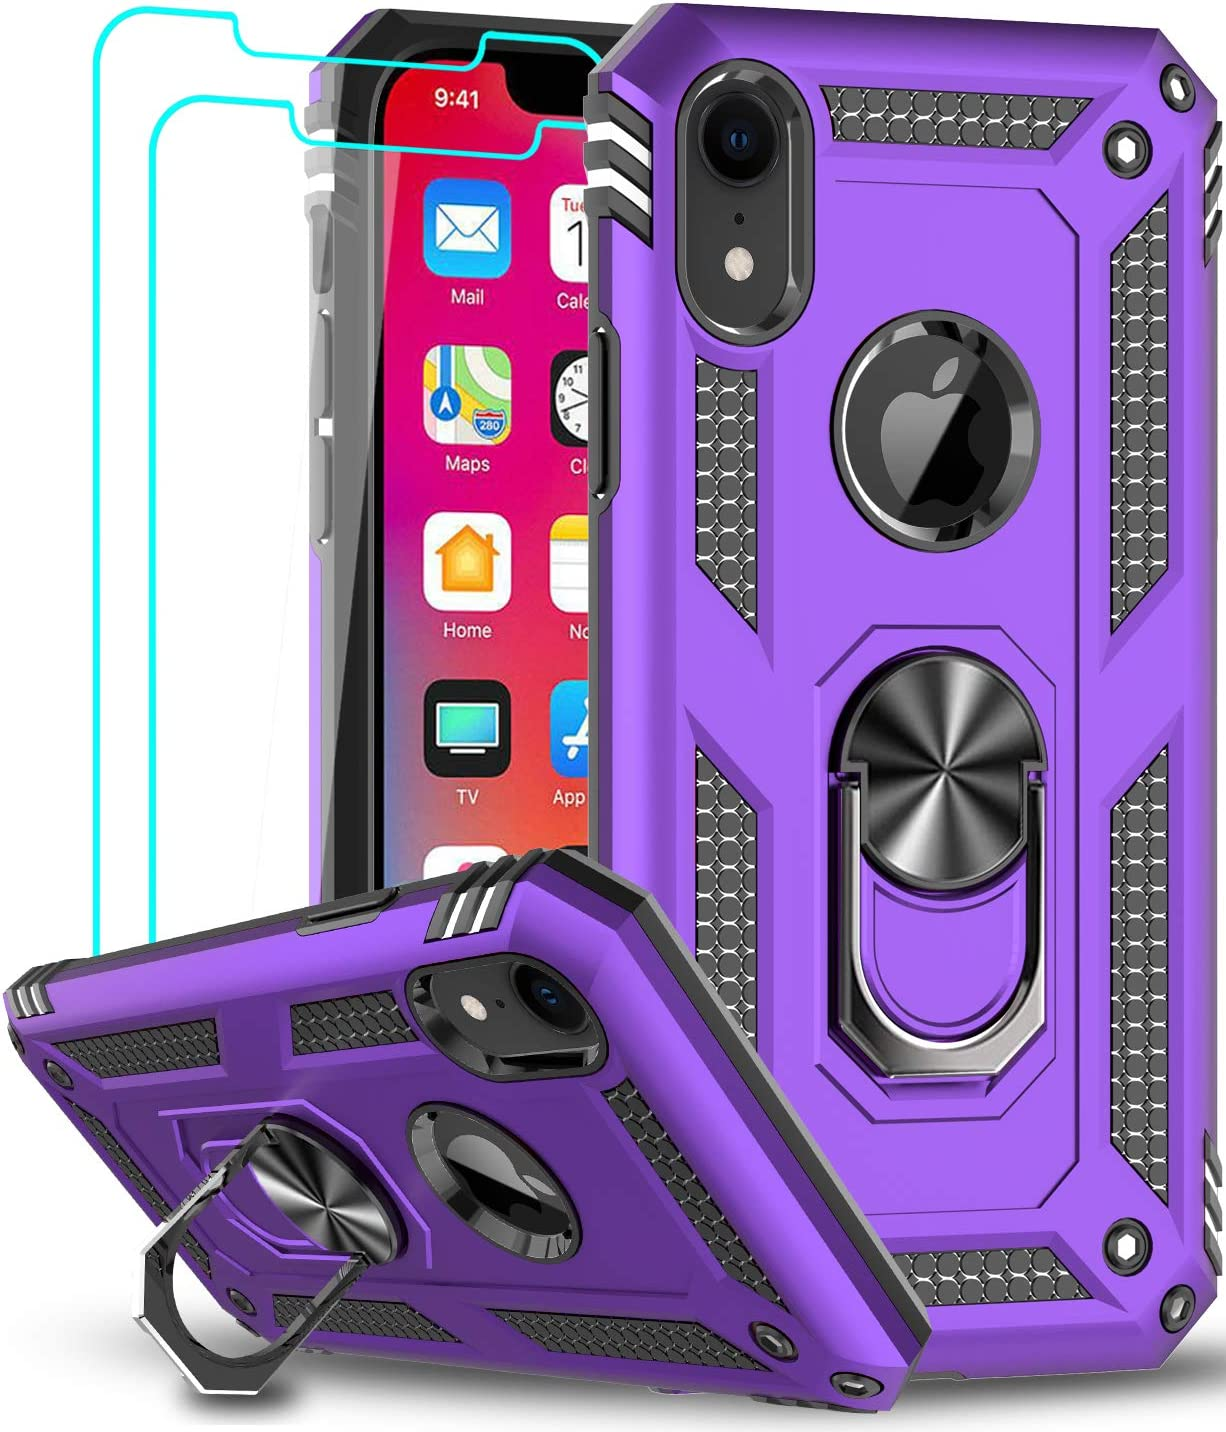 iPhone XR Case with Tempered Glass Screen Protector [2 Pack] for Women Men Teens, LeYi [Military Grade] Defender Protective Phone Case with Magnetic Ring Kickstand for Apple iPhone XR 10 10 XR, Purple